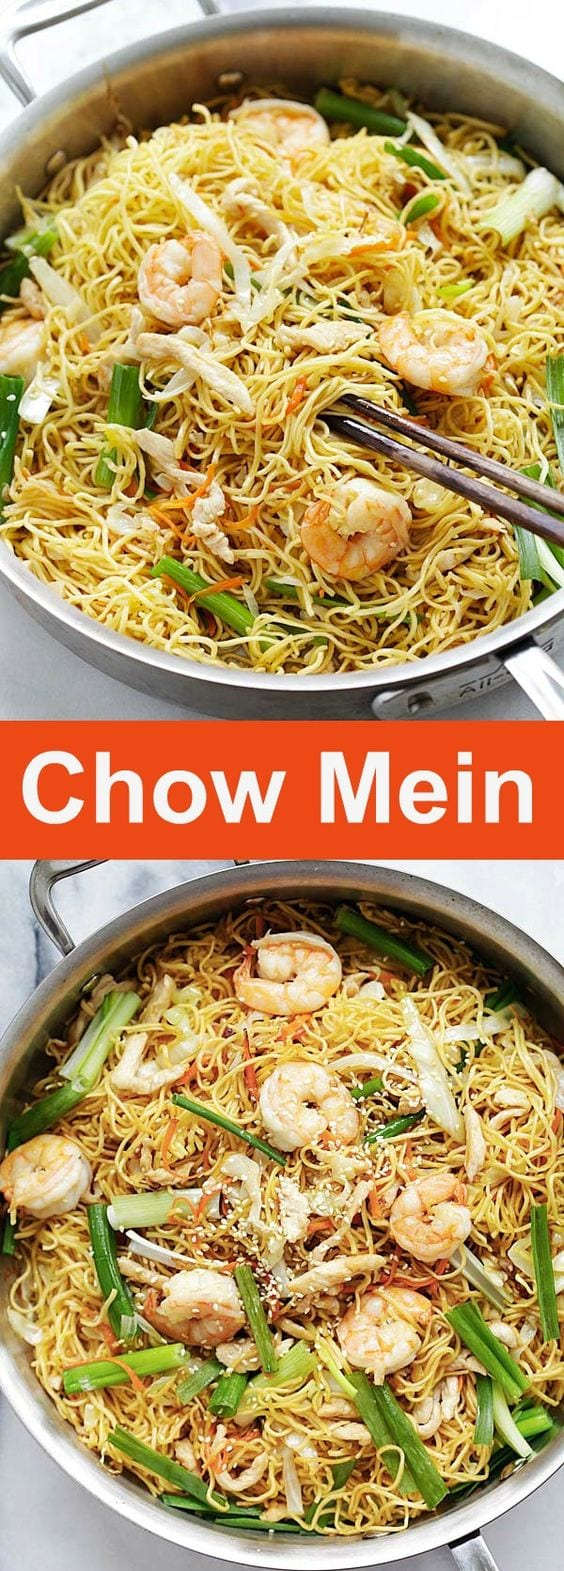 Genial Easy Stir Fried Noodles Chow Mein Quick Shrimp Chow Mein Easy Delicious Recipes Panda Express Chow Mein Tray Price Panda Express Chow Mein Ingredients nice food Panda Express Chow Mein